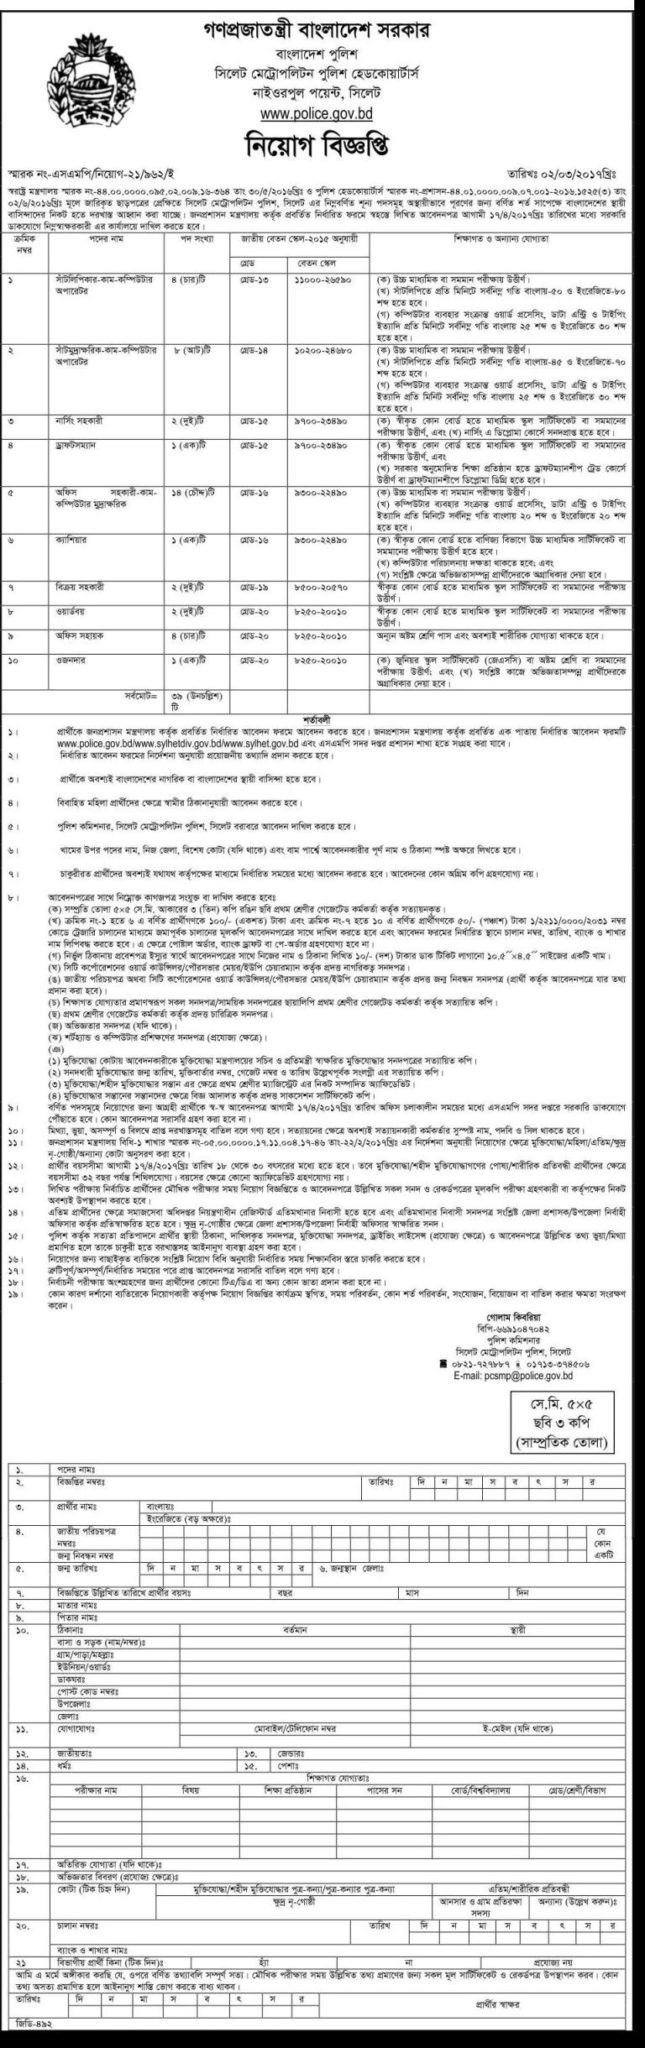 Bangladesh Police Head Quarter Job Circular April 2017